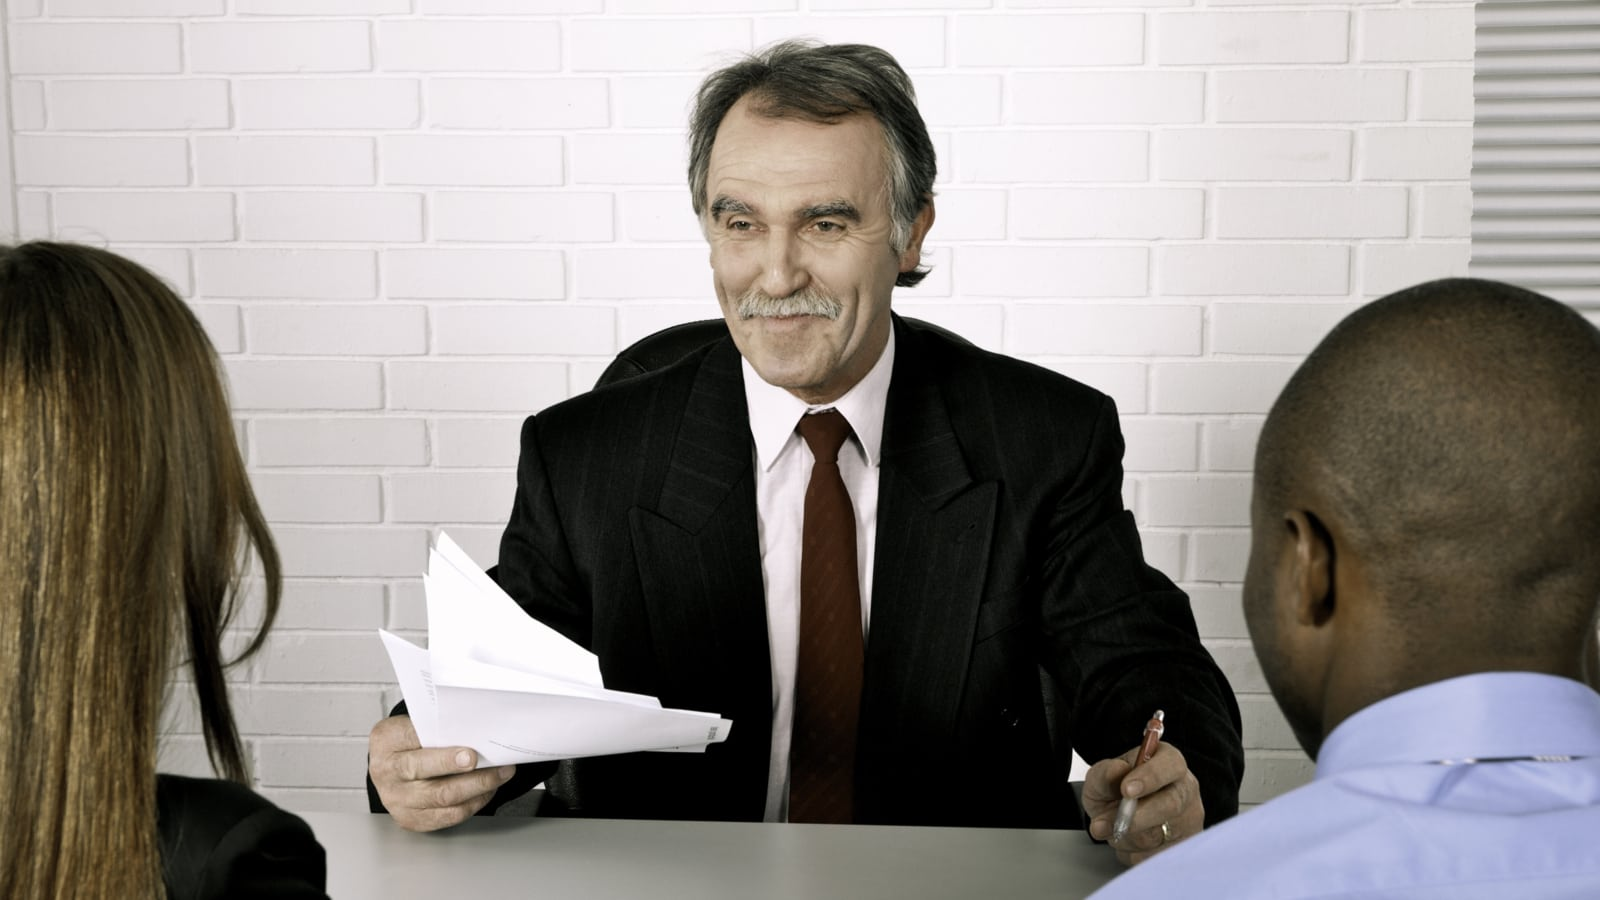 Attorney With Clients Stock Photo